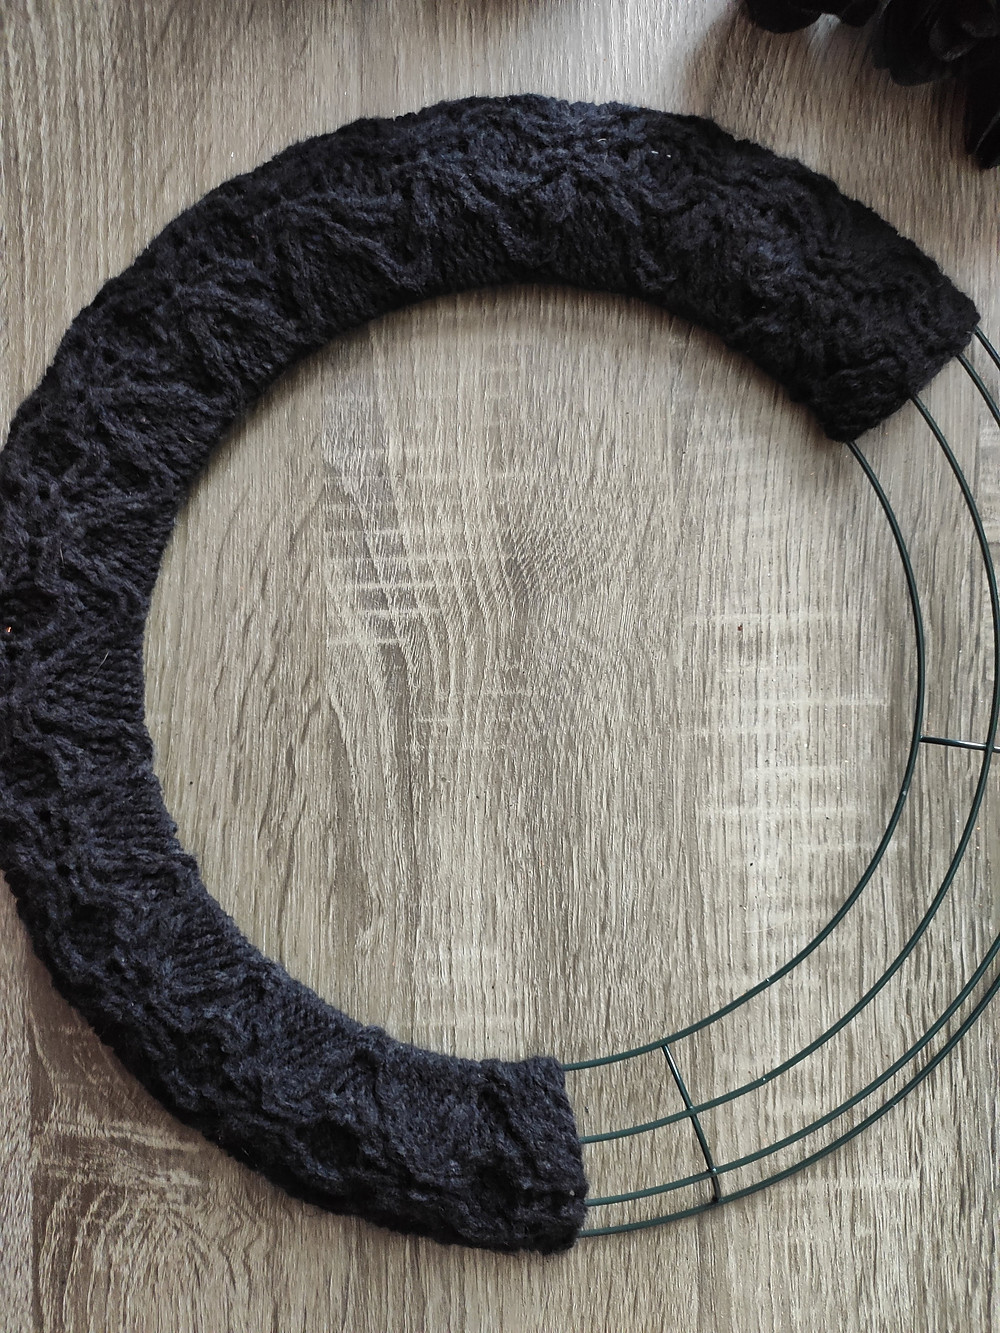 right side of wreath with the knit fabric now covering two thirds of it.